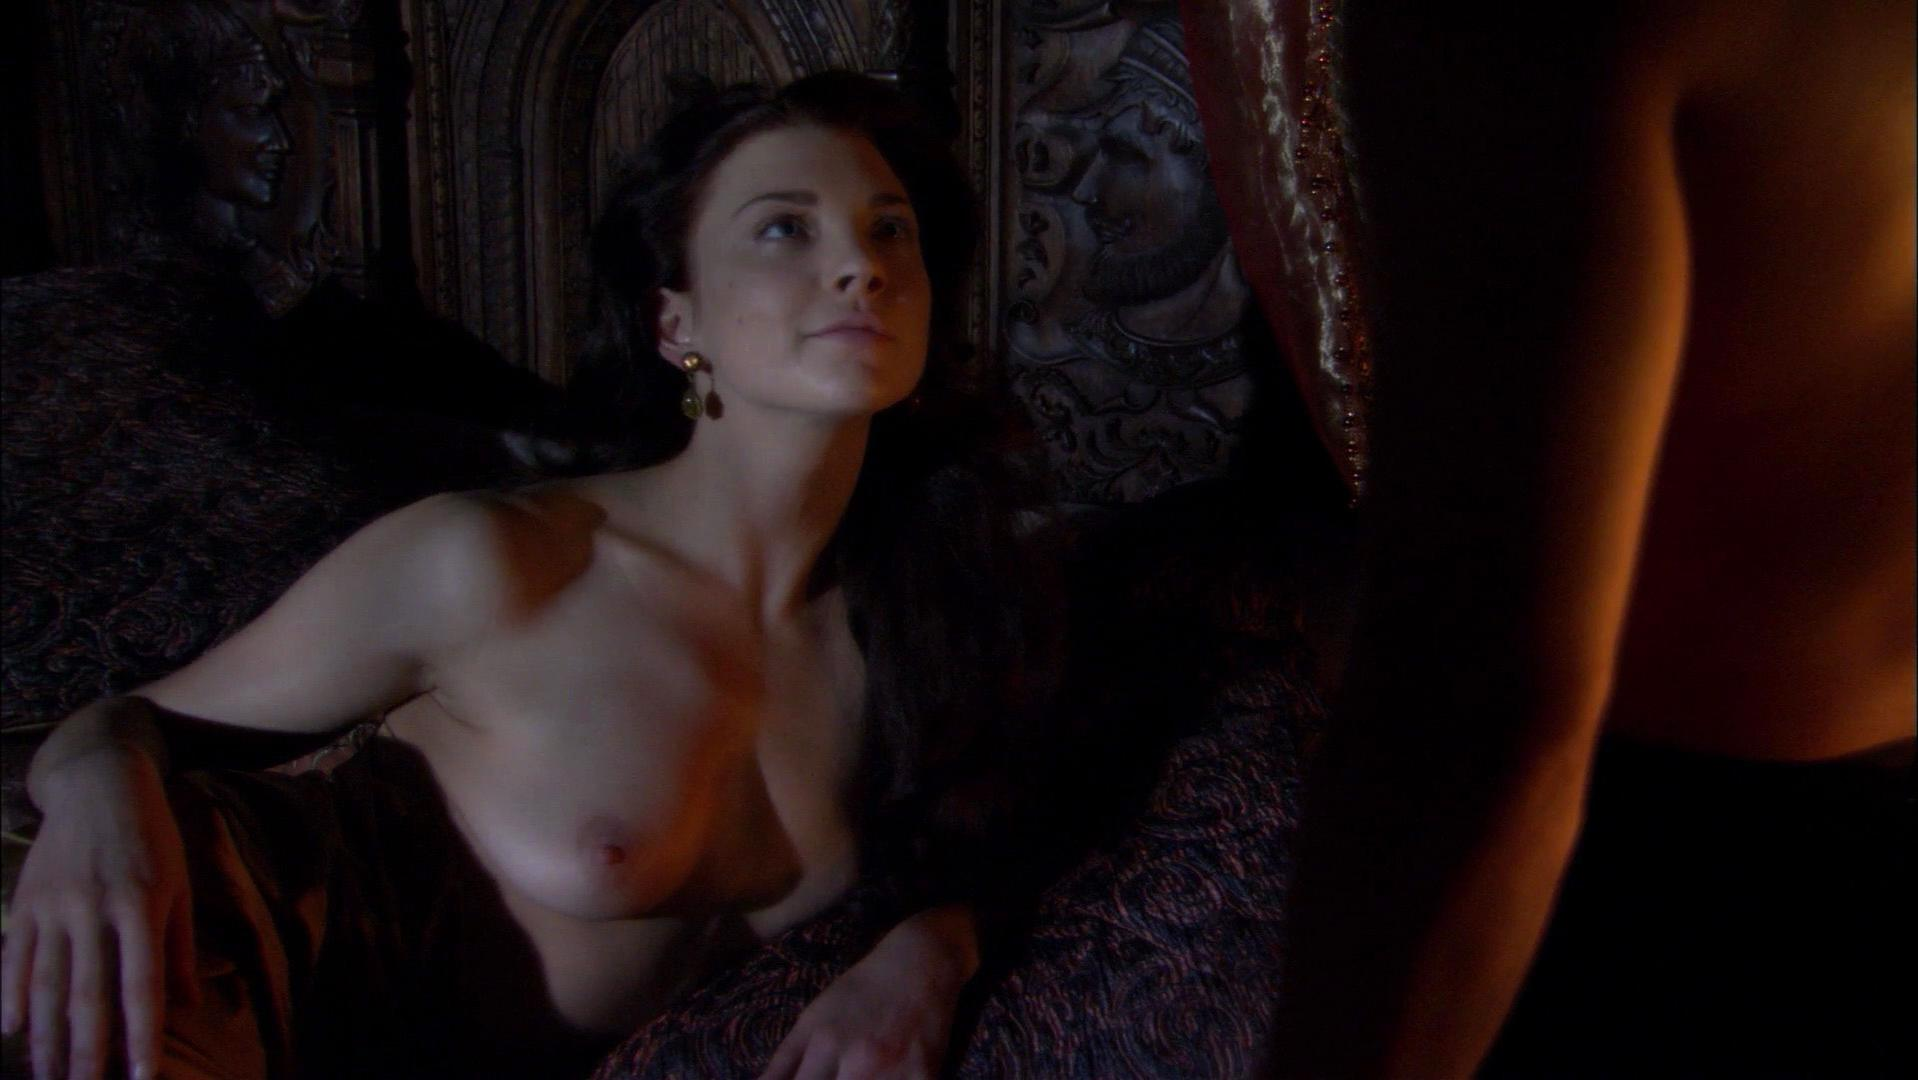 Natalie dormer nude boobs tudors series